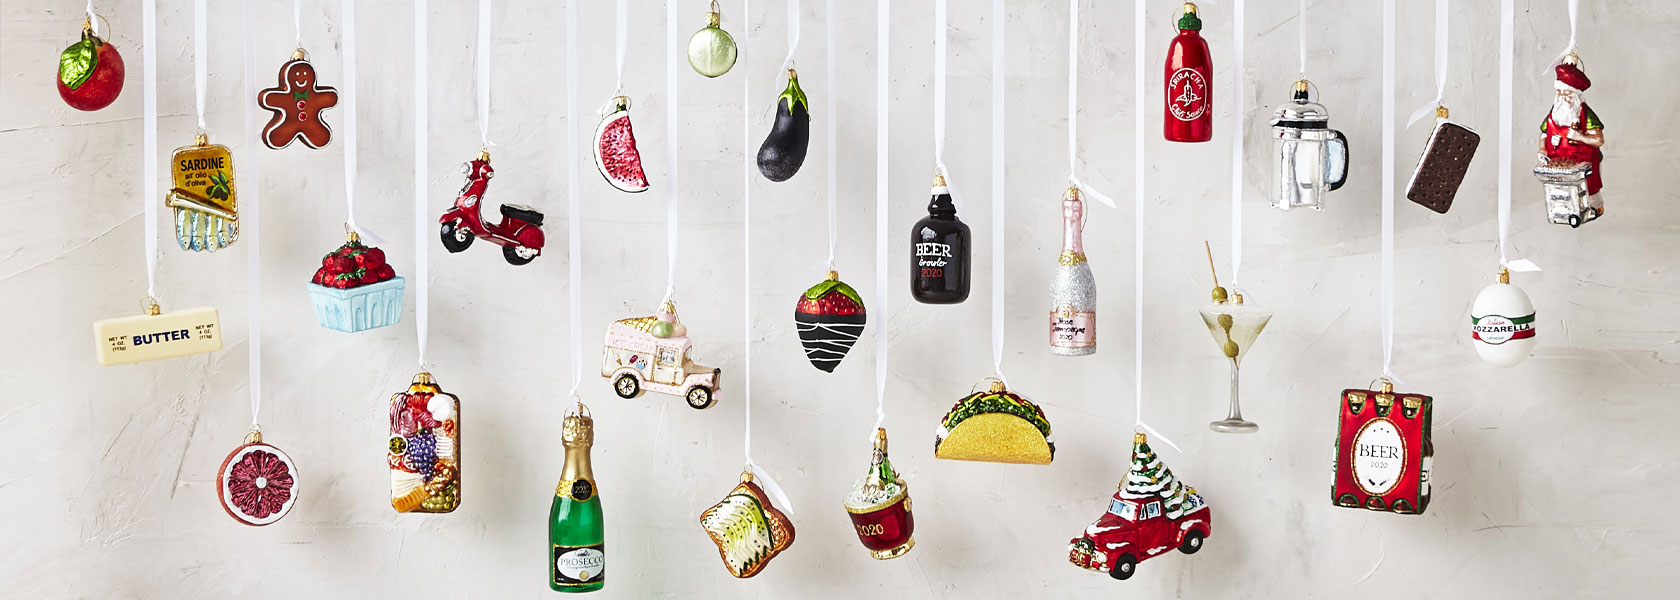 Sur La Table glass holiday ornaments